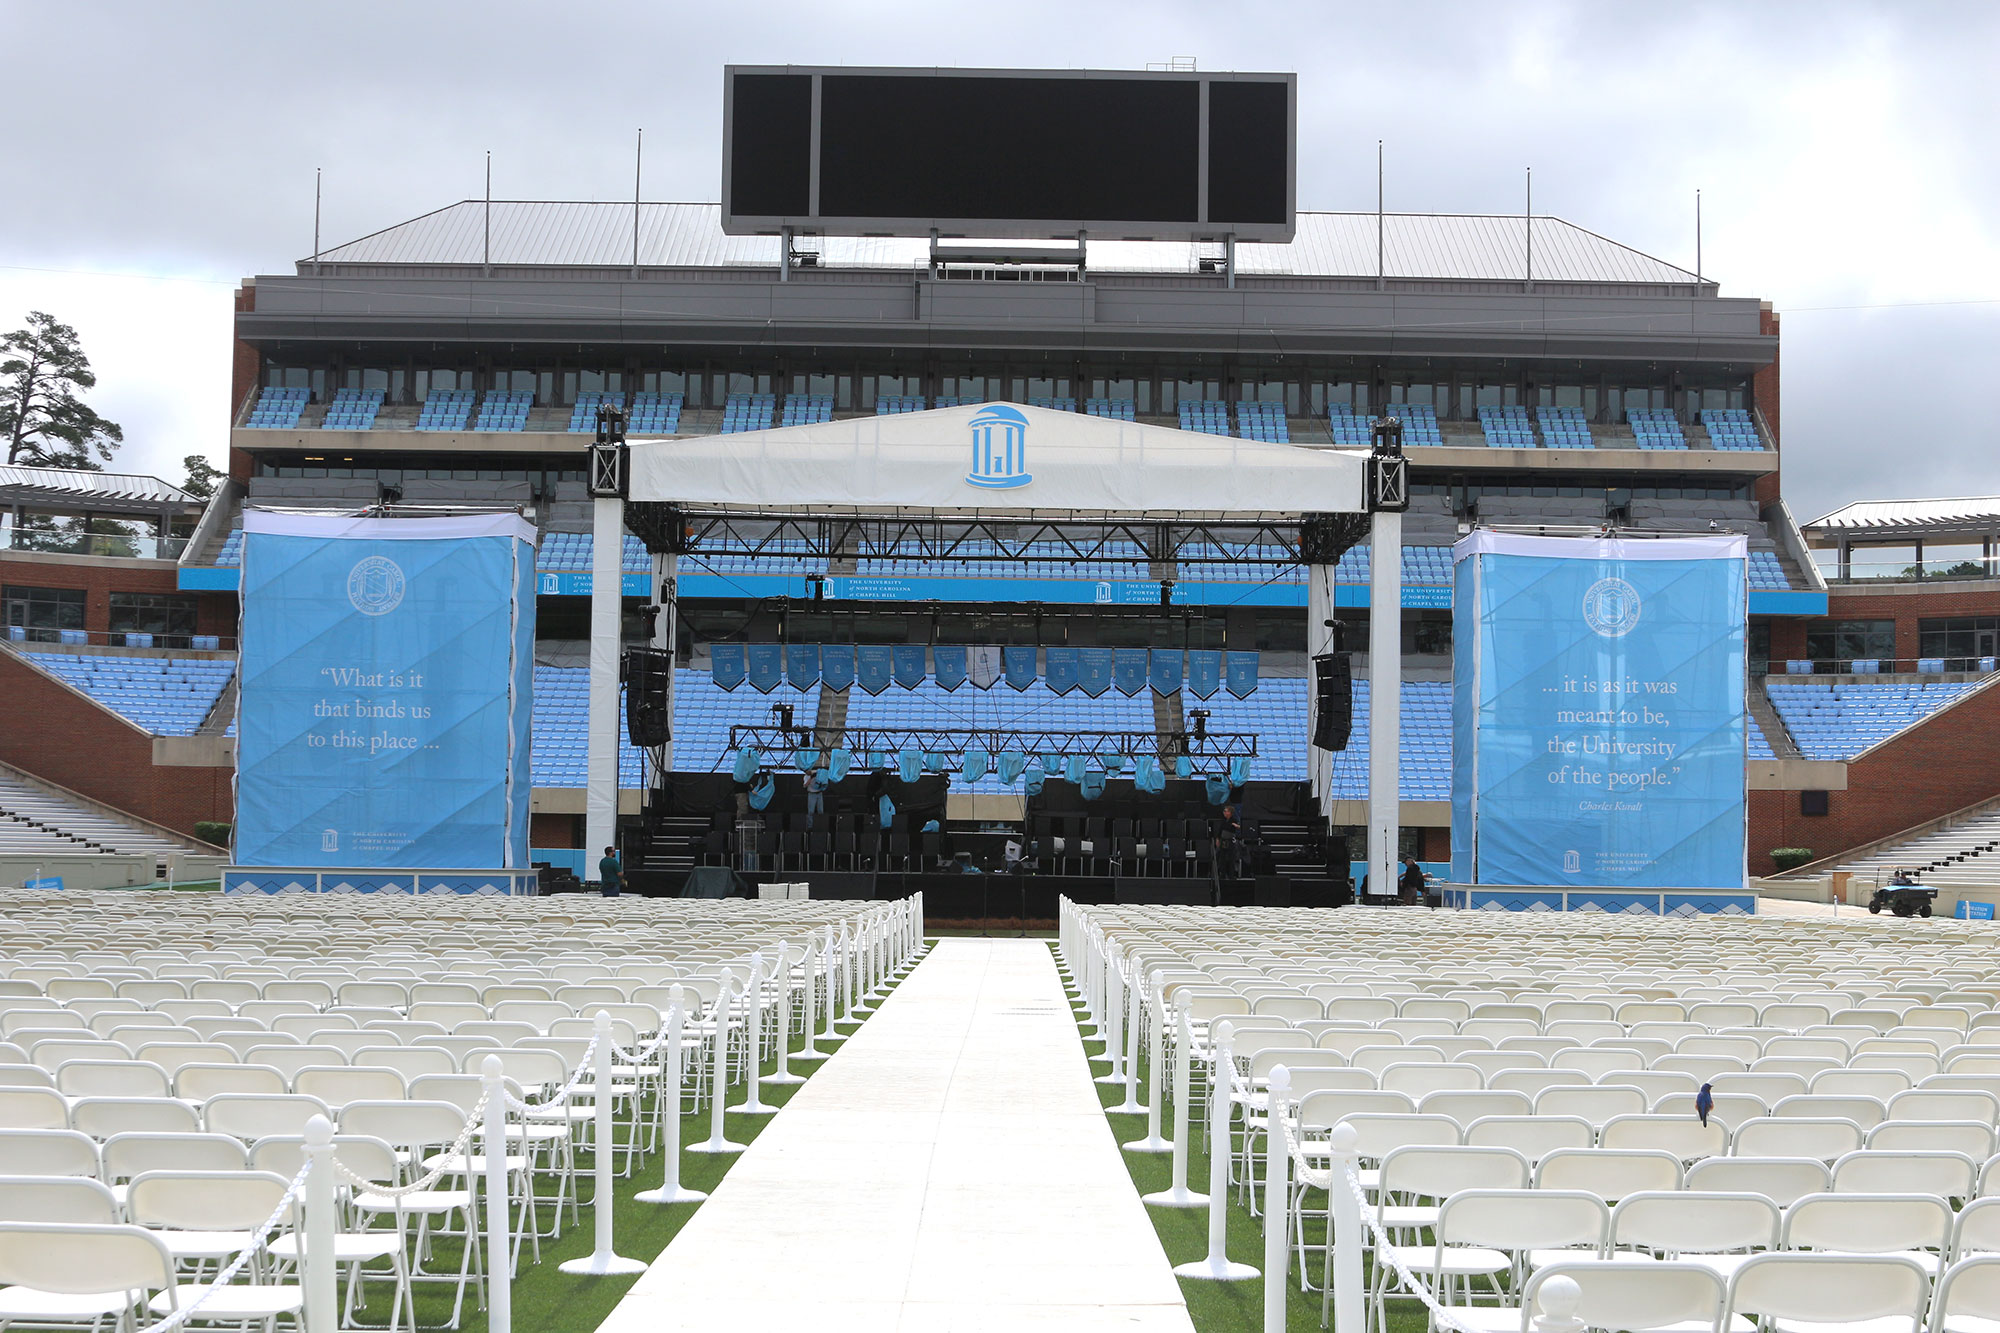 UNC-CH 2017 Commencement Set-Up